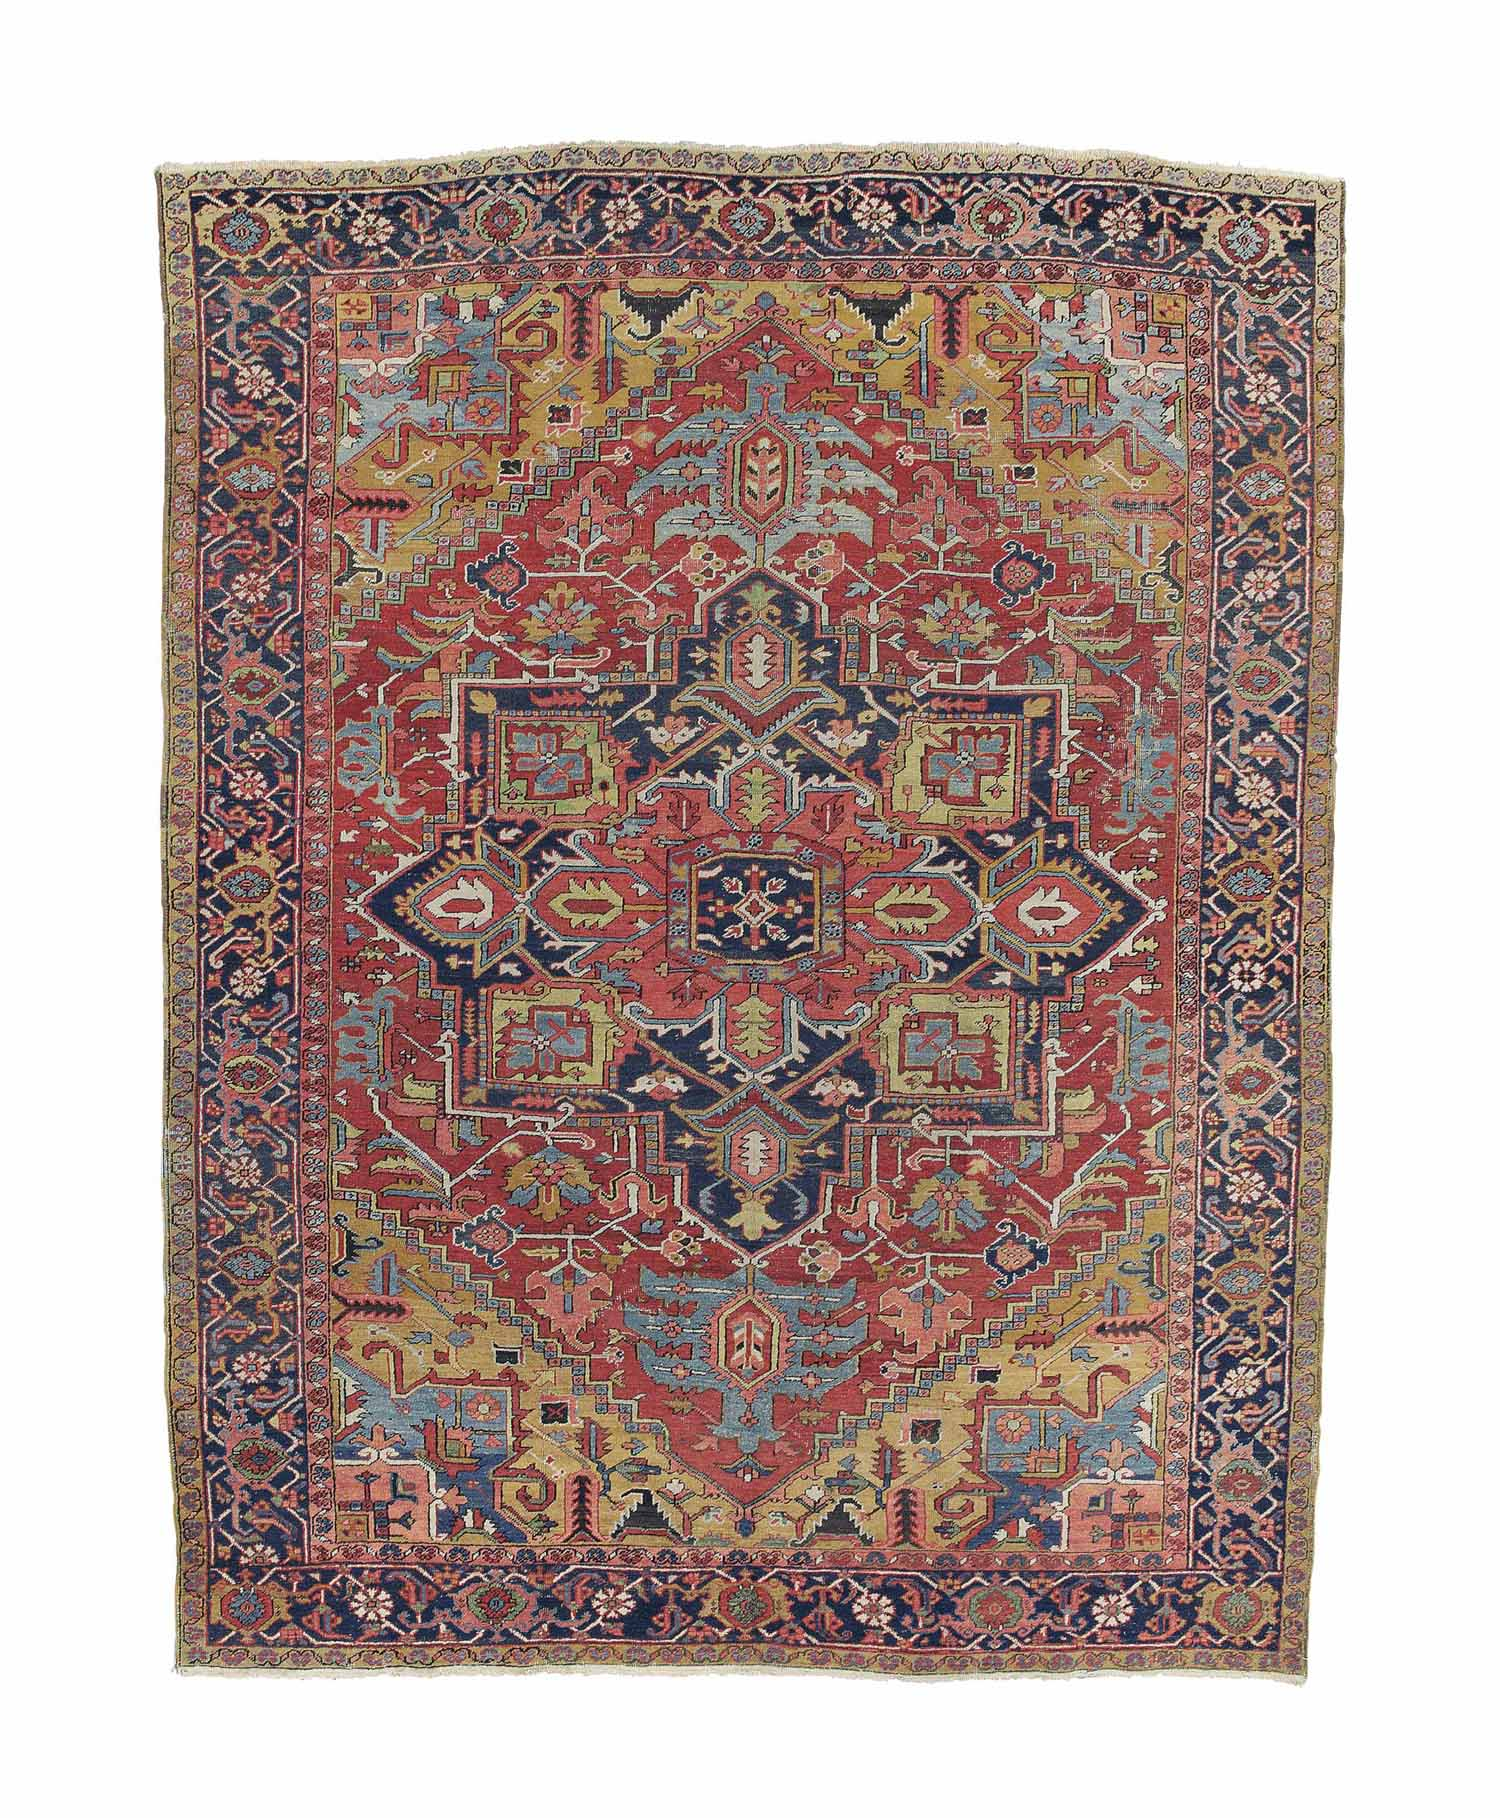 An antique Heriz carpet